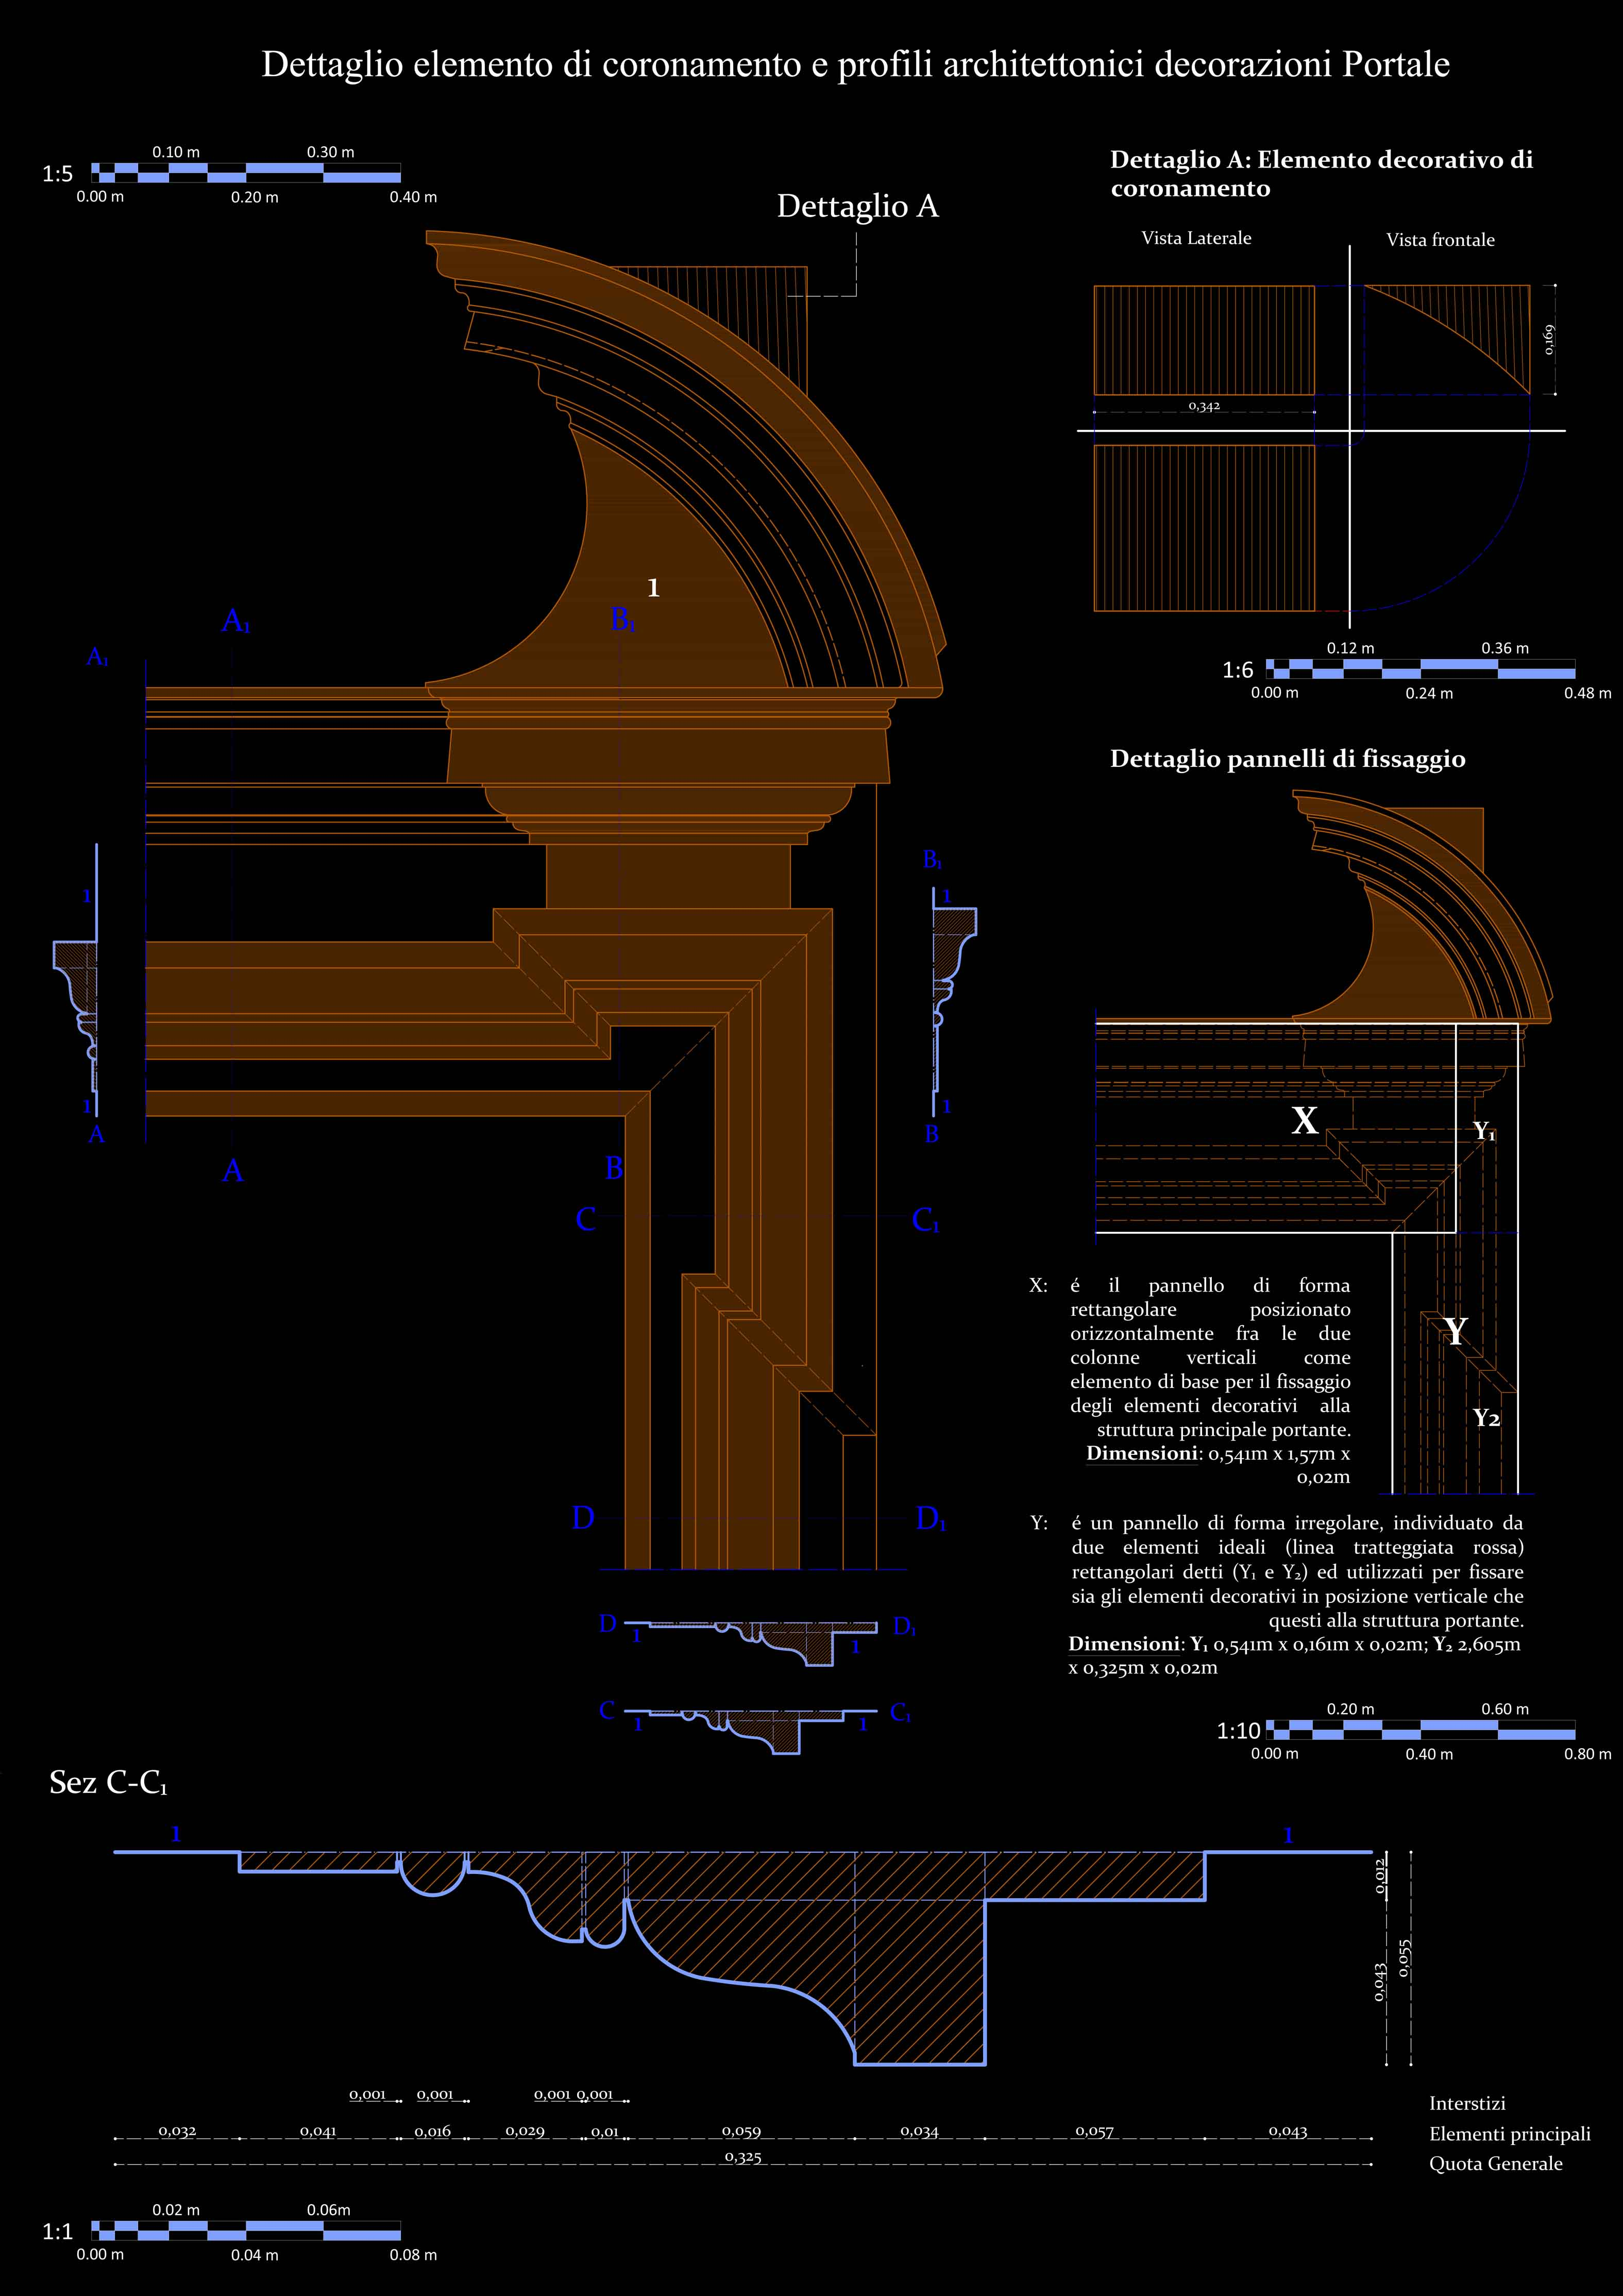 Details of the decorative profiles of the monumental gates Fonti}